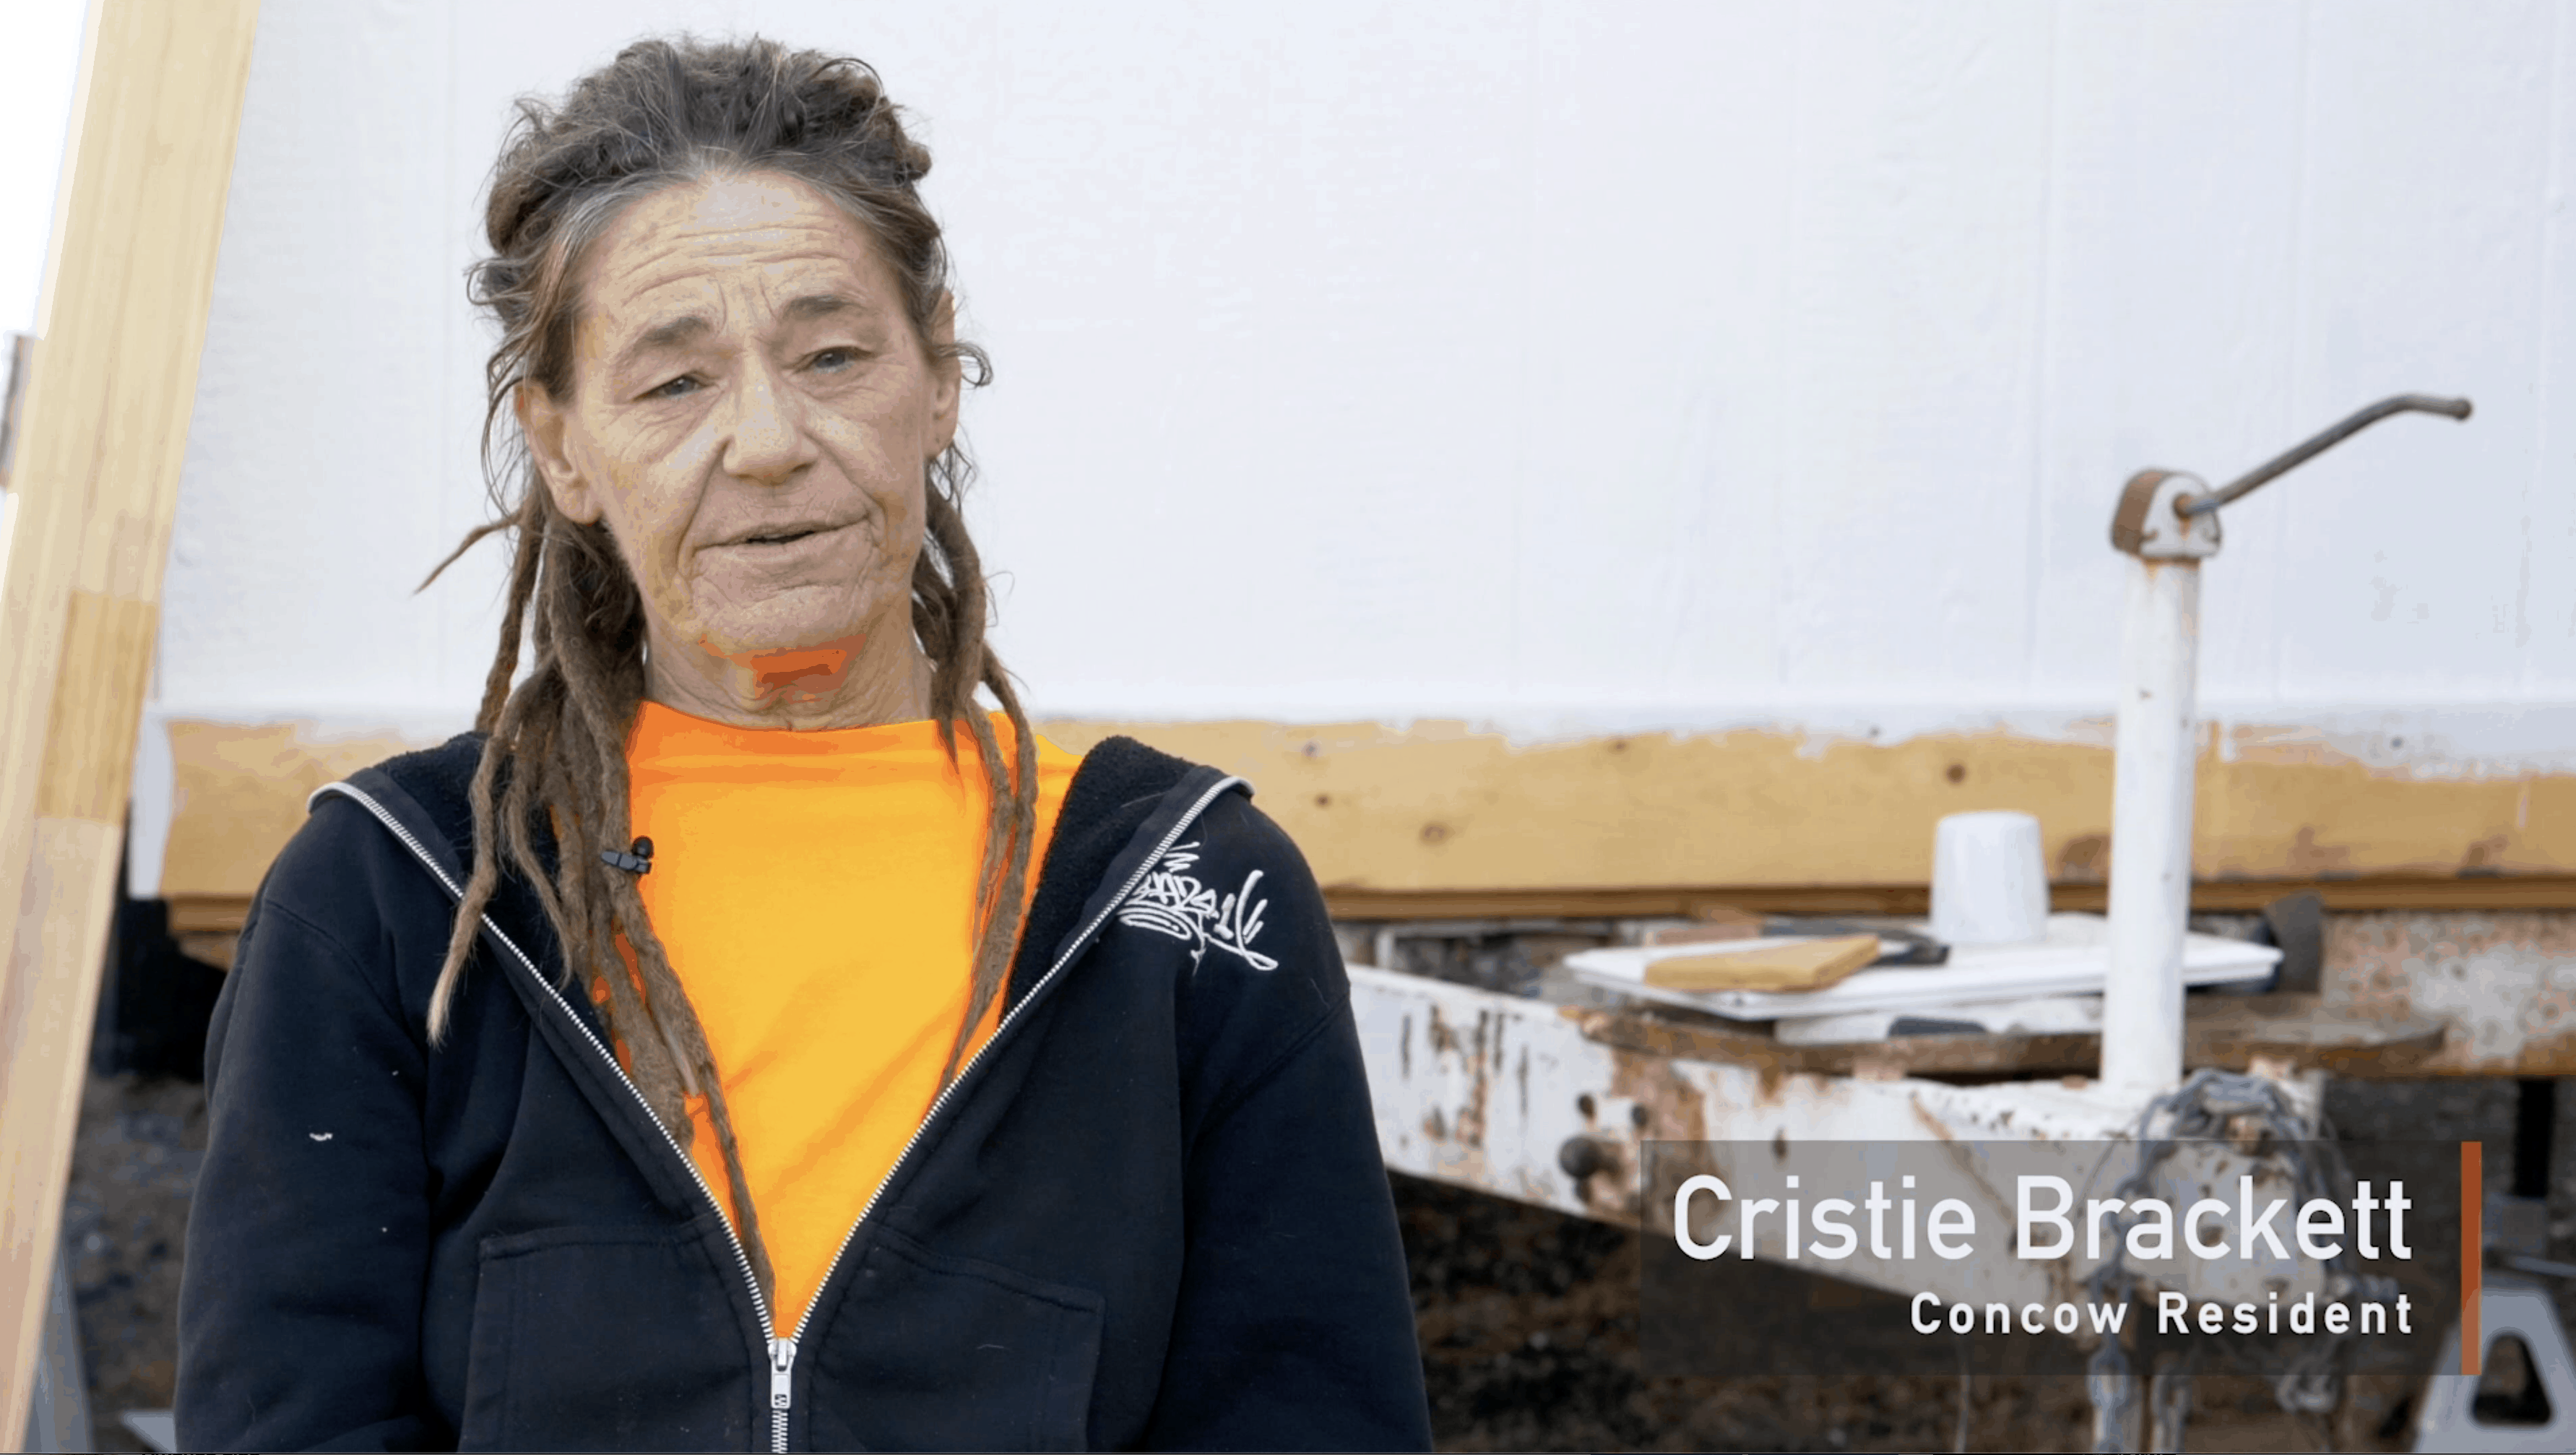 Cristie Brakett, Concow Resident from the 'Tiny Homes for Camp Fire Survivors' project